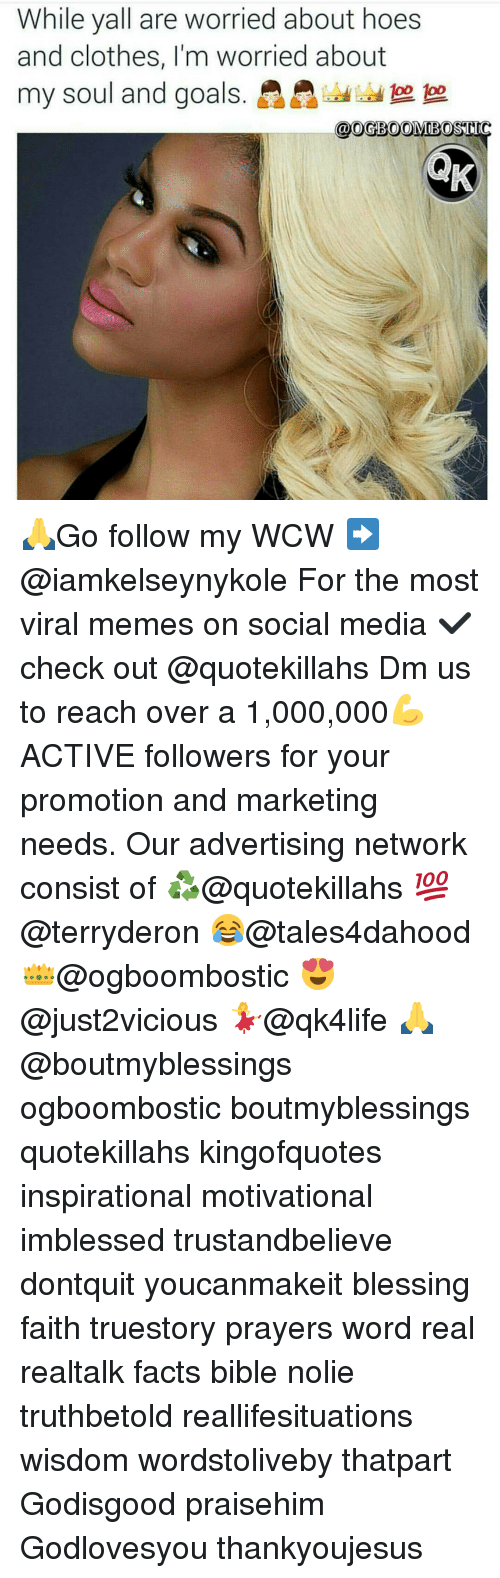 Memes, 🤖, and Media: While all are worried about hoes  and clothes, I'm worried about  my soul and goals.  @0GBOOMBOSTIC 🙏Go follow my WCW ➡@iamkelseynykole For the most viral memes on social media ✔check out @quotekillahs Dm us to reach over a 1,000,000💪ACTIVE followers for your promotion and marketing needs. Our advertising network consist of ♻@quotekillahs 💯@terryderon 😂@tales4dahood 👑@ogboombostic 😍@just2vicious 💃@qk4life 🙏@boutmyblessings ogboombostic boutmyblessings quotekillahs kingofquotes inspirational motivational imblessed trustandbelieve dontquit youcanmakeit blessing faith truestory prayers word real realtalk facts bible nolie truthbetold reallifesituations wisdom wordstoliveby thatpart Godisgood praisehim Godlovesyou thankyoujesus